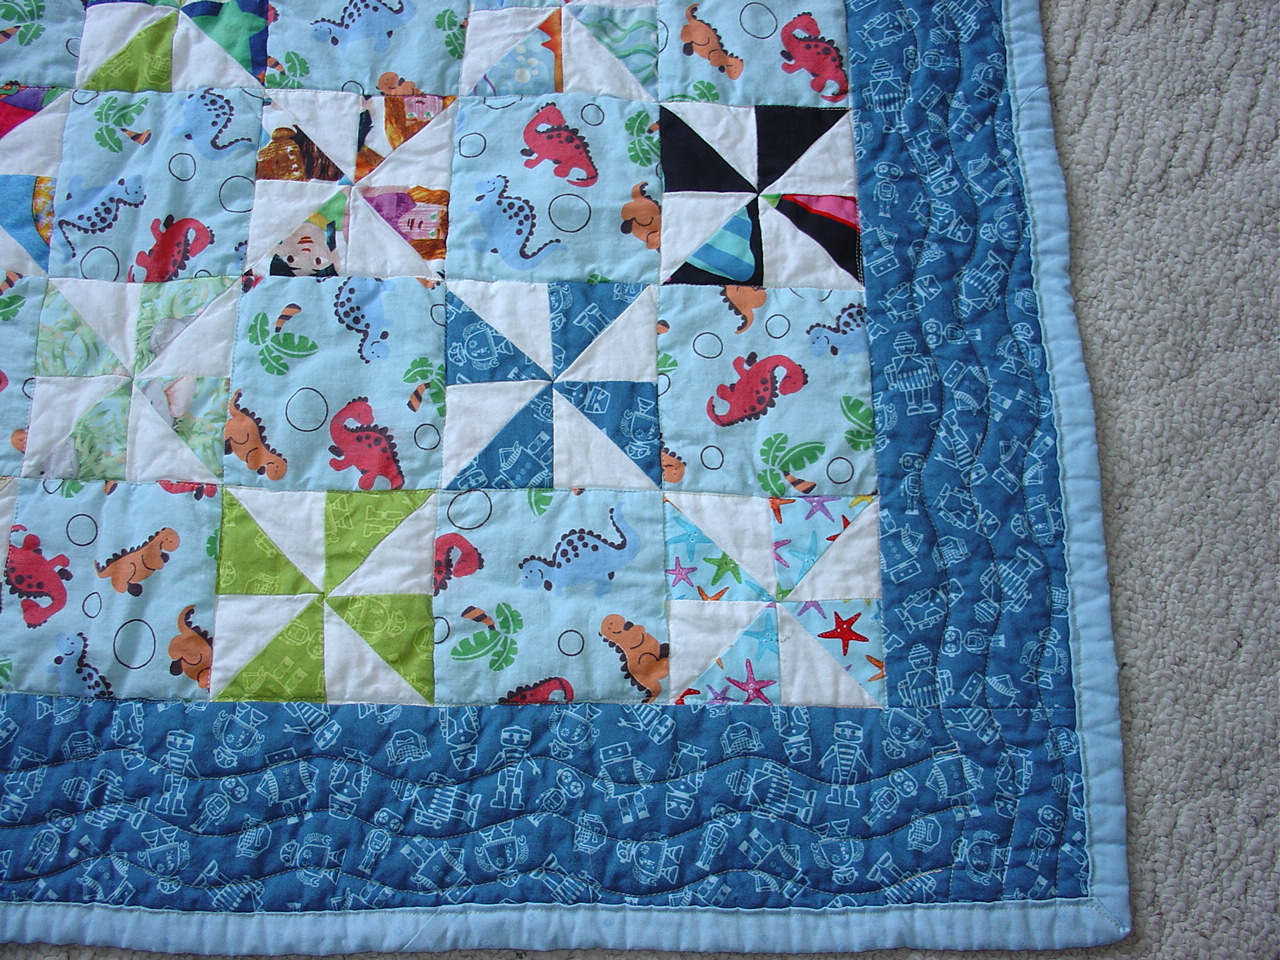 Treadlestitches: More Charity Quilt Recipes--Baby Pinwheel Quilt